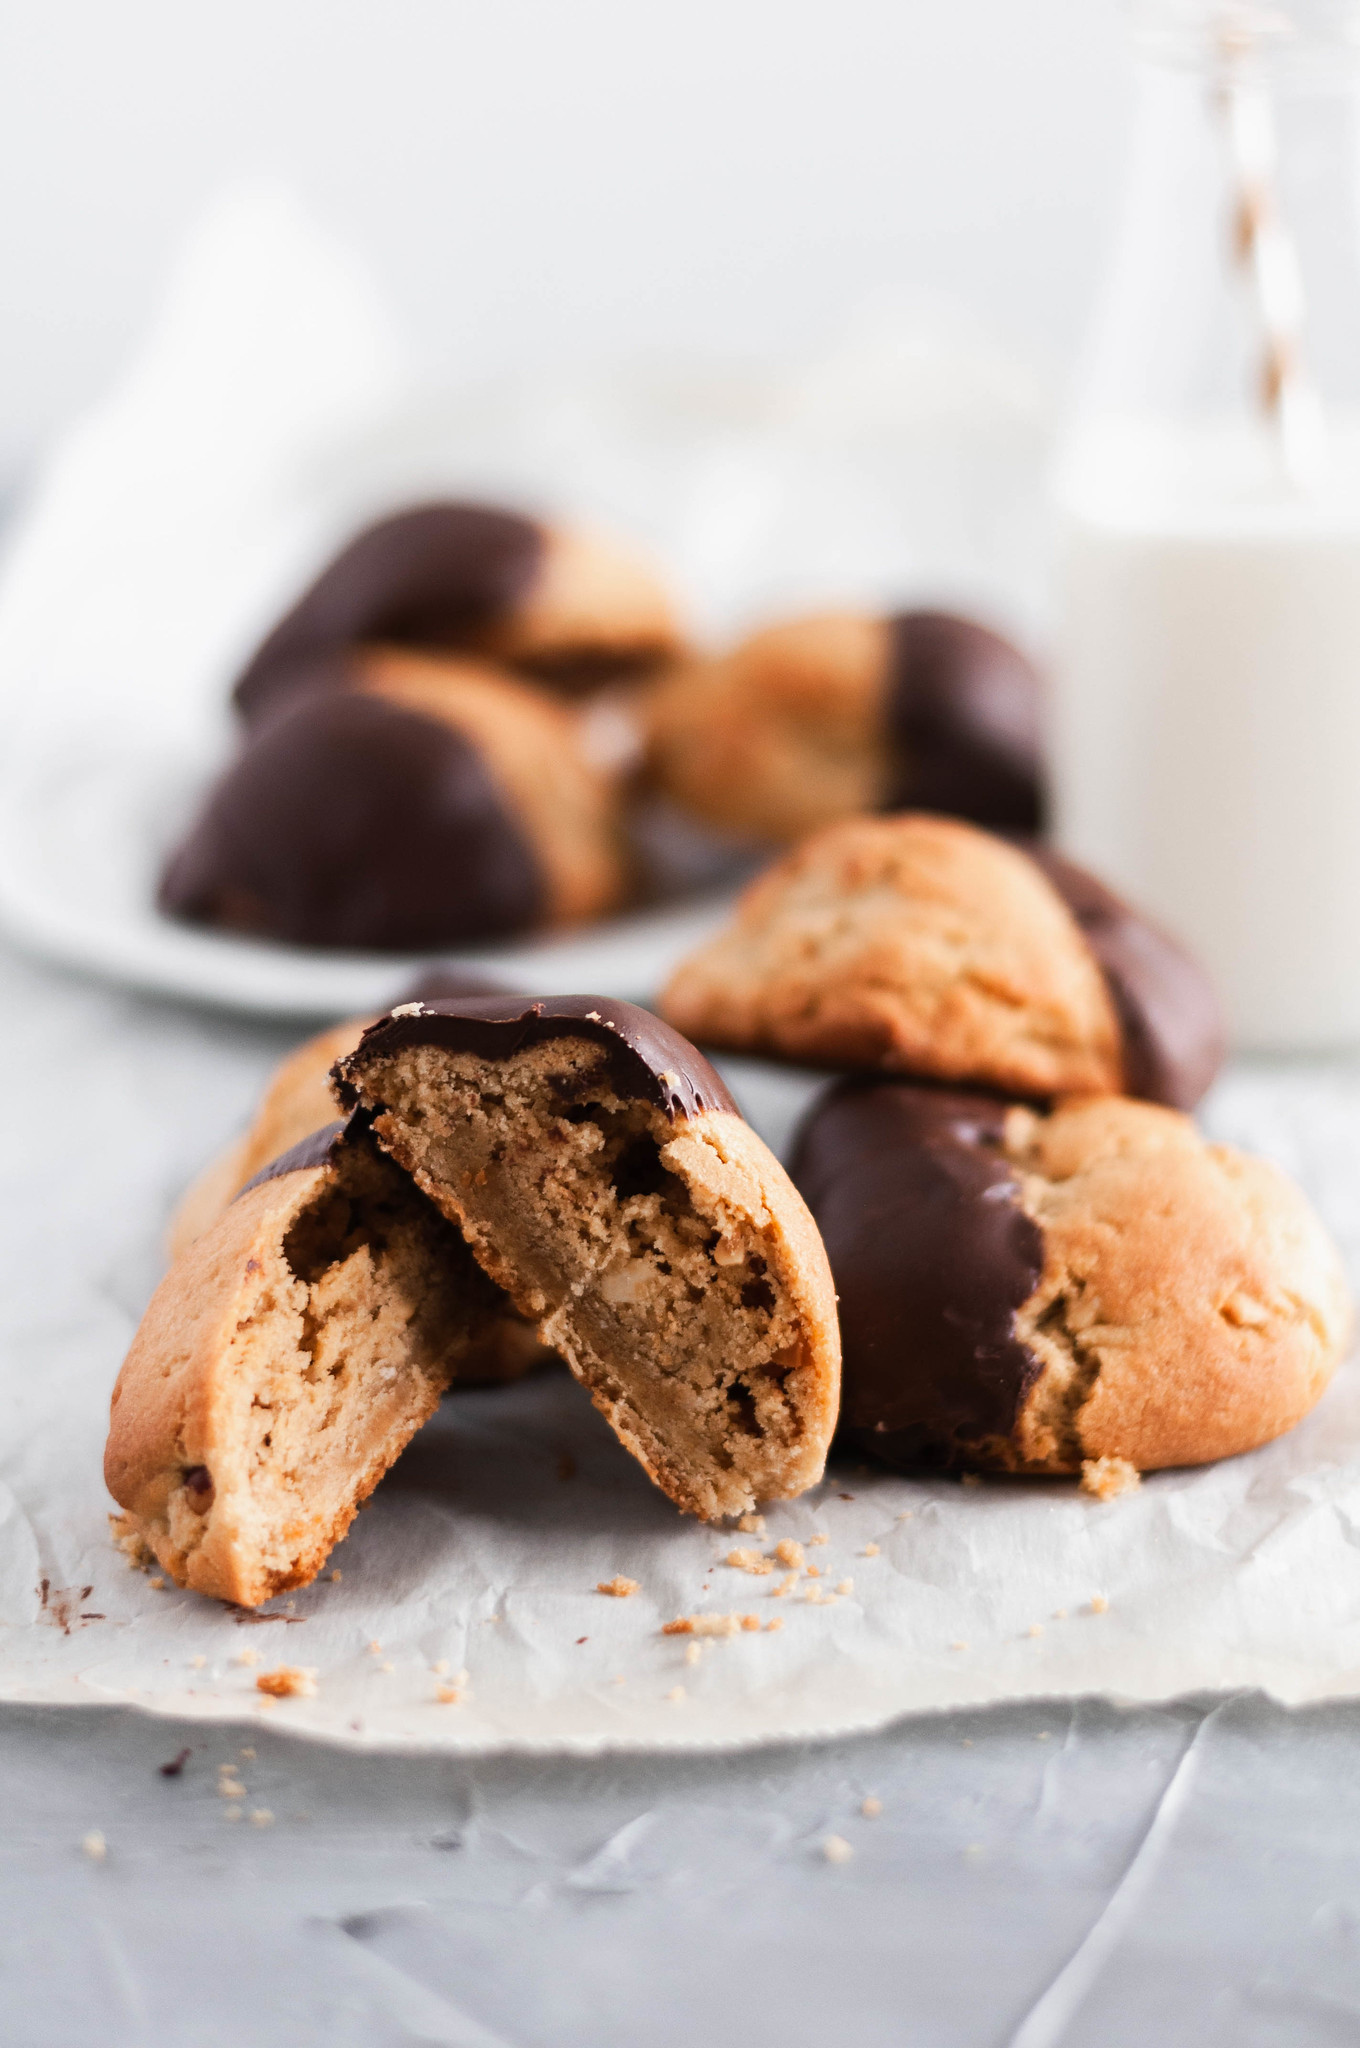 These giant Chocolate Peanut Butter Cookies are perfect for your Christmas cookie baking. Rich, chewy peanut butter cookies dipped in melted chocolate.